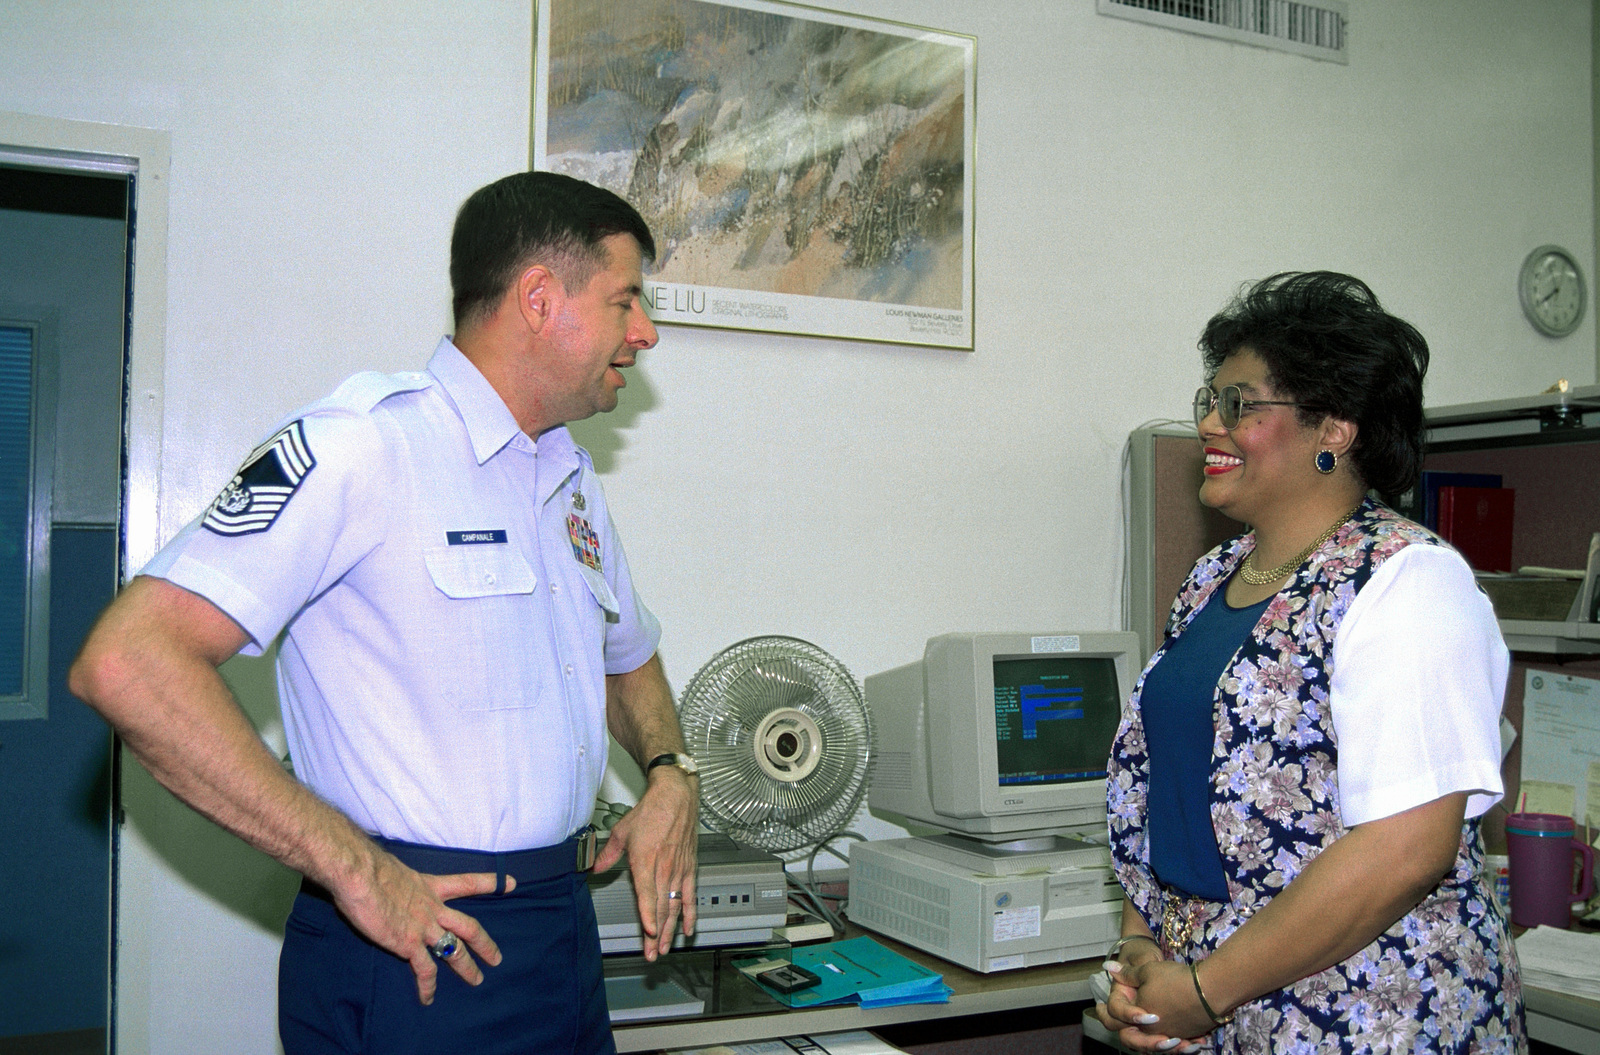 CMSAF David J. Campanale meets the daughter of former CMSAF Thomas Barnes, Hazel Lamb, who is a civilian employee at Dyess AFB hospital